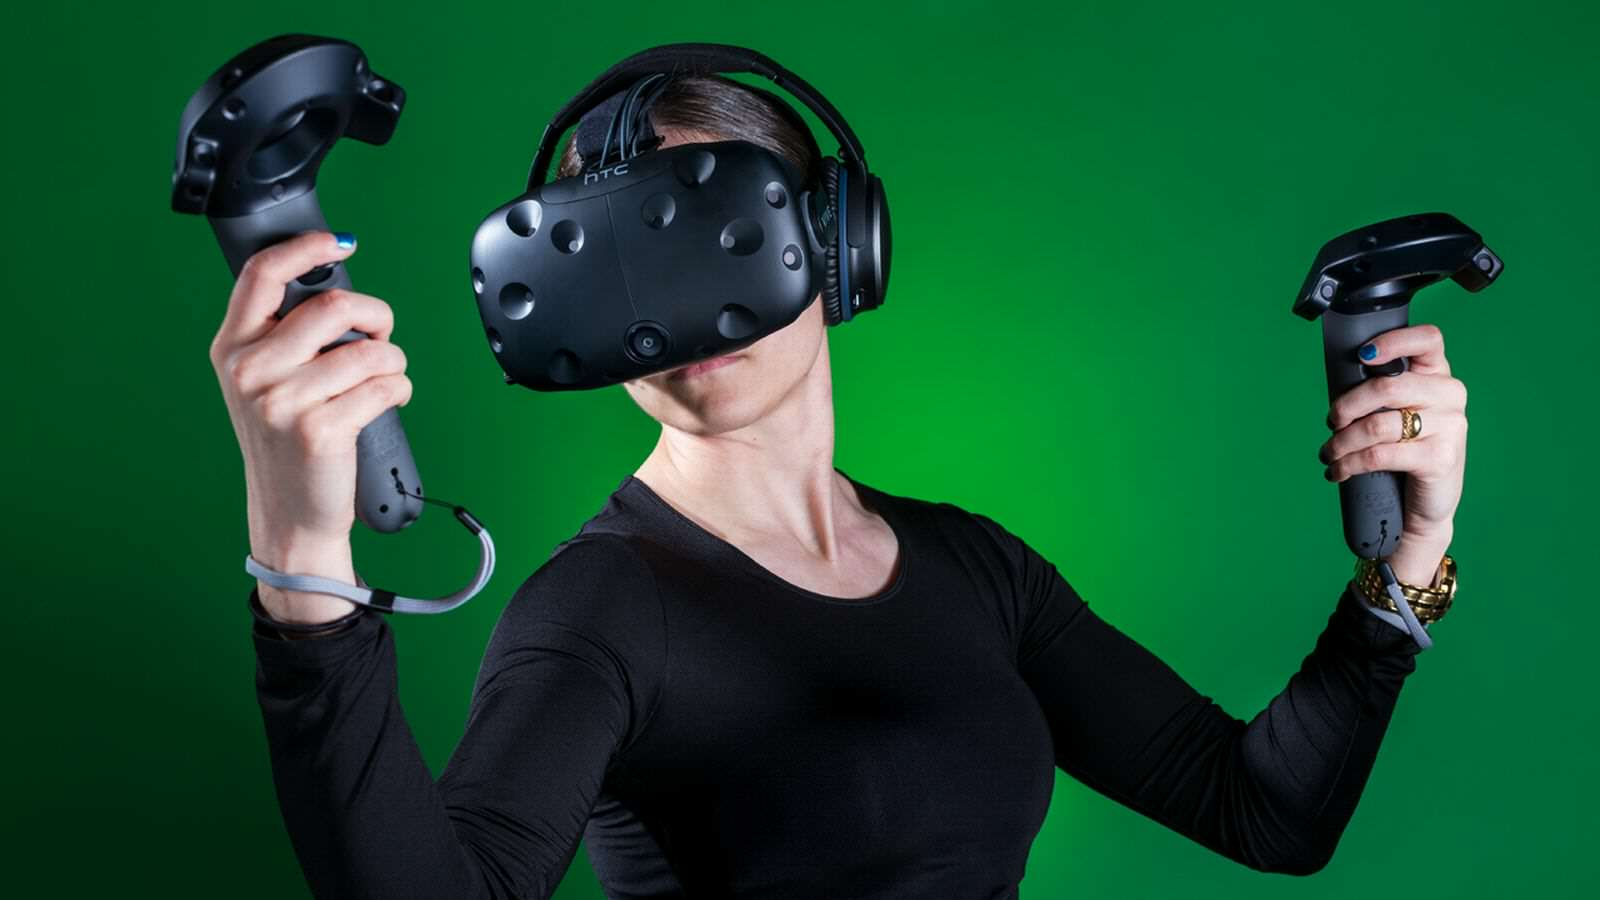 HTC Vive Price Hike Hits UK, Brexit Apparently To Blame VRG VRV 141 HTC Vive Thumb.0.0